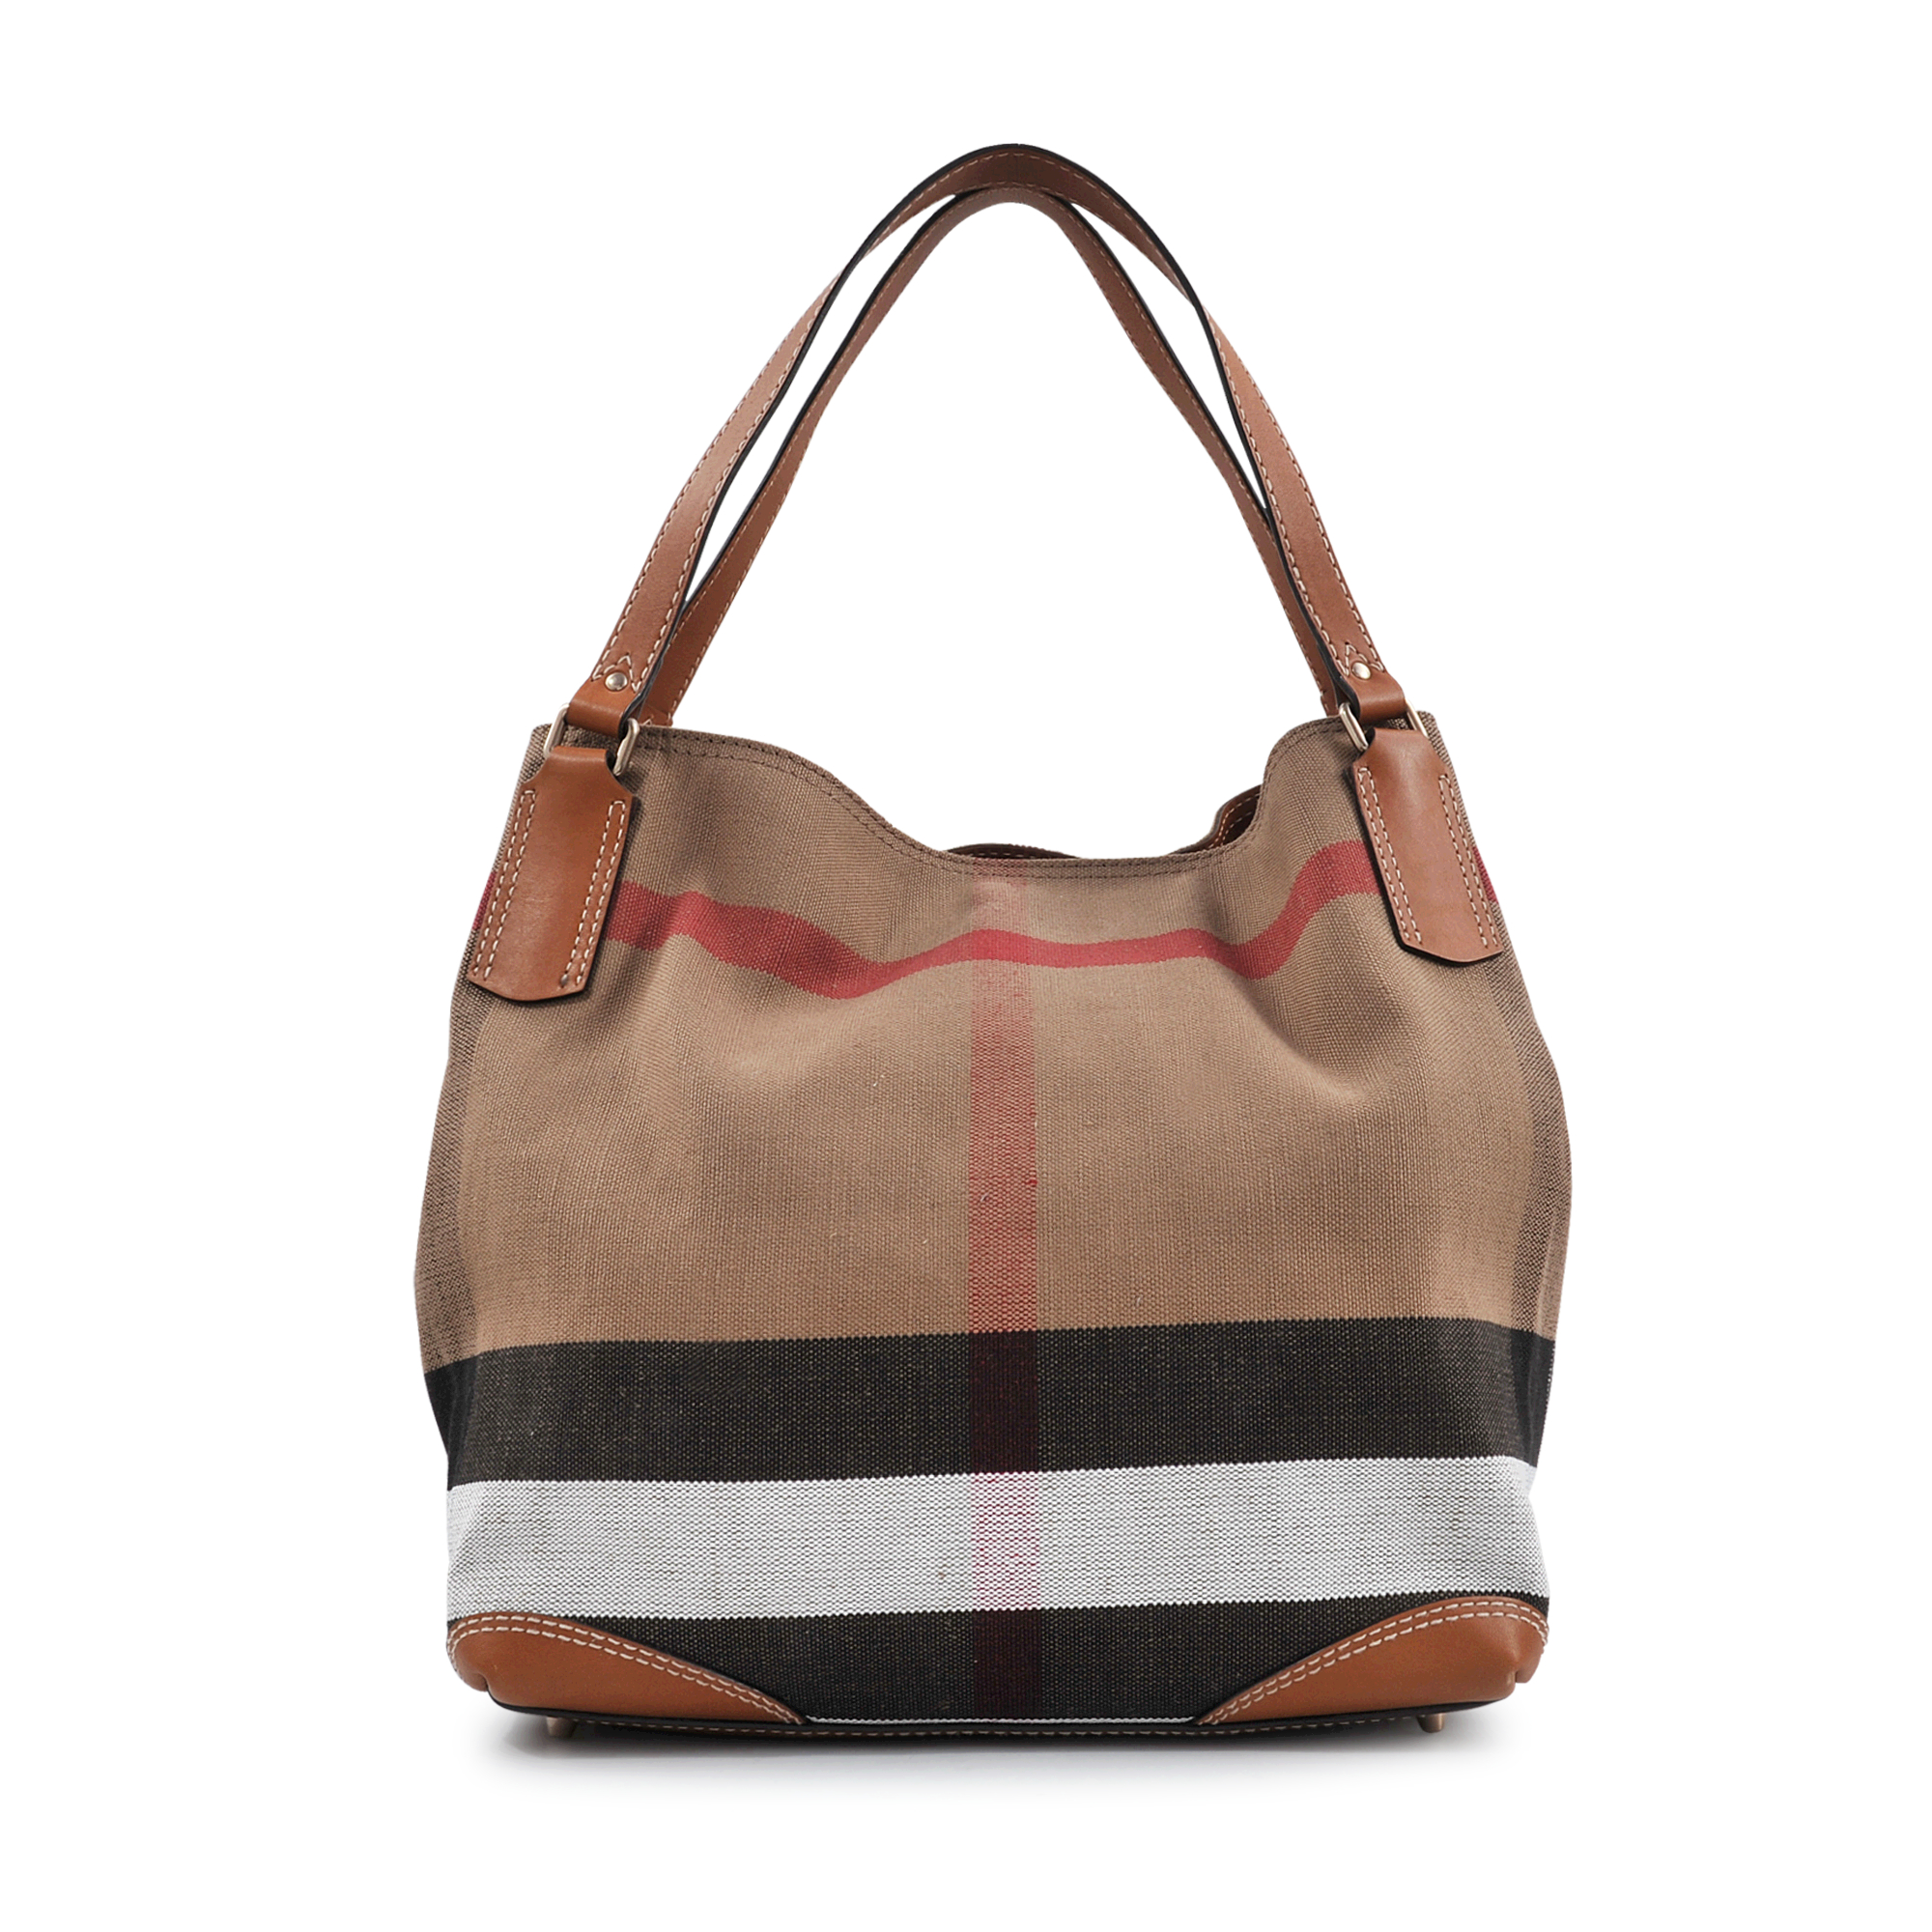 db43f2a373e1 Lyst - Burberry Sm Maidstone Brit Canvas Bag in Brown